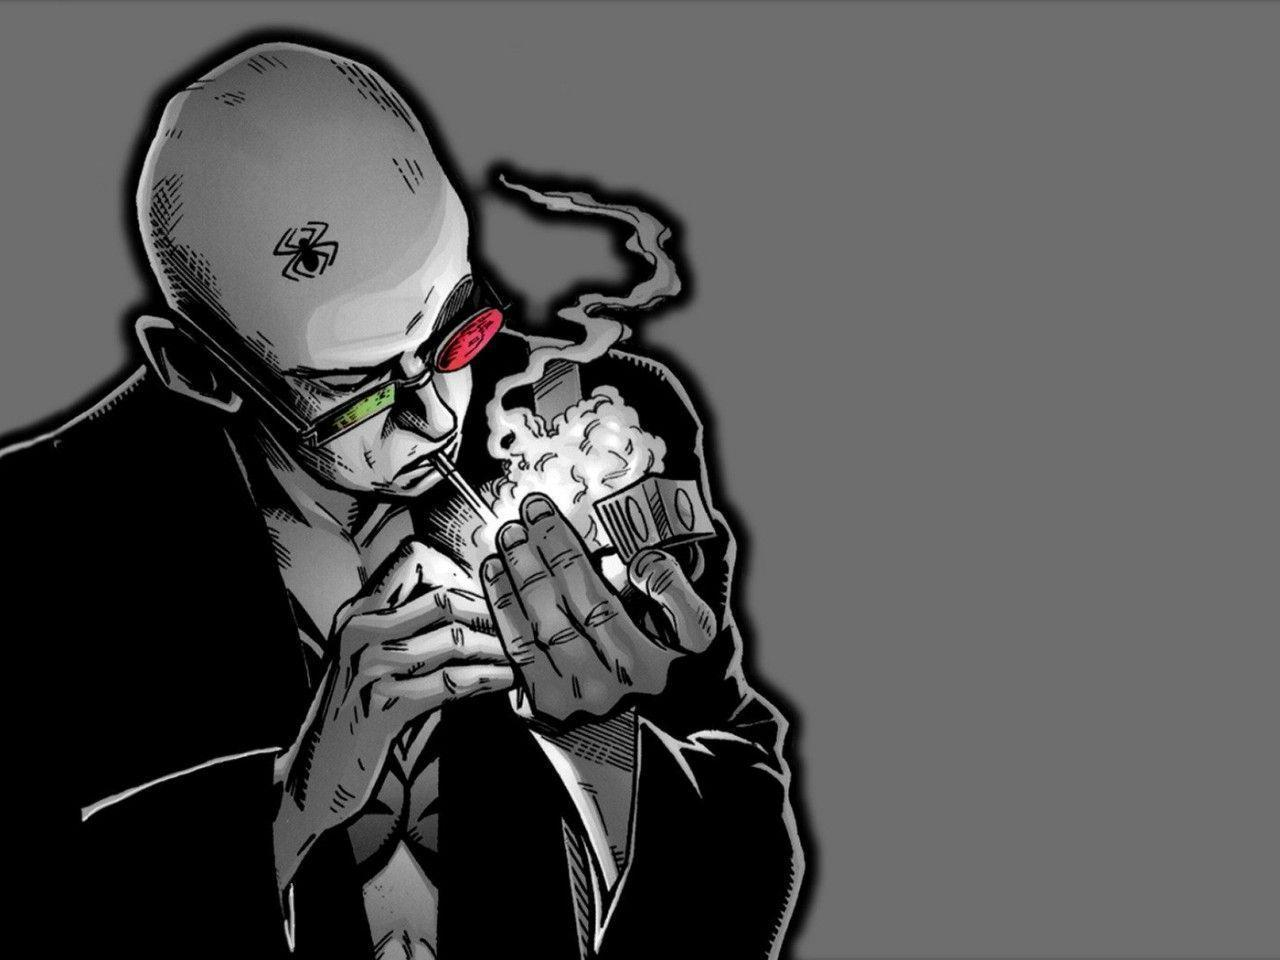 Wallpapers For > Gangster Love Backgrounds